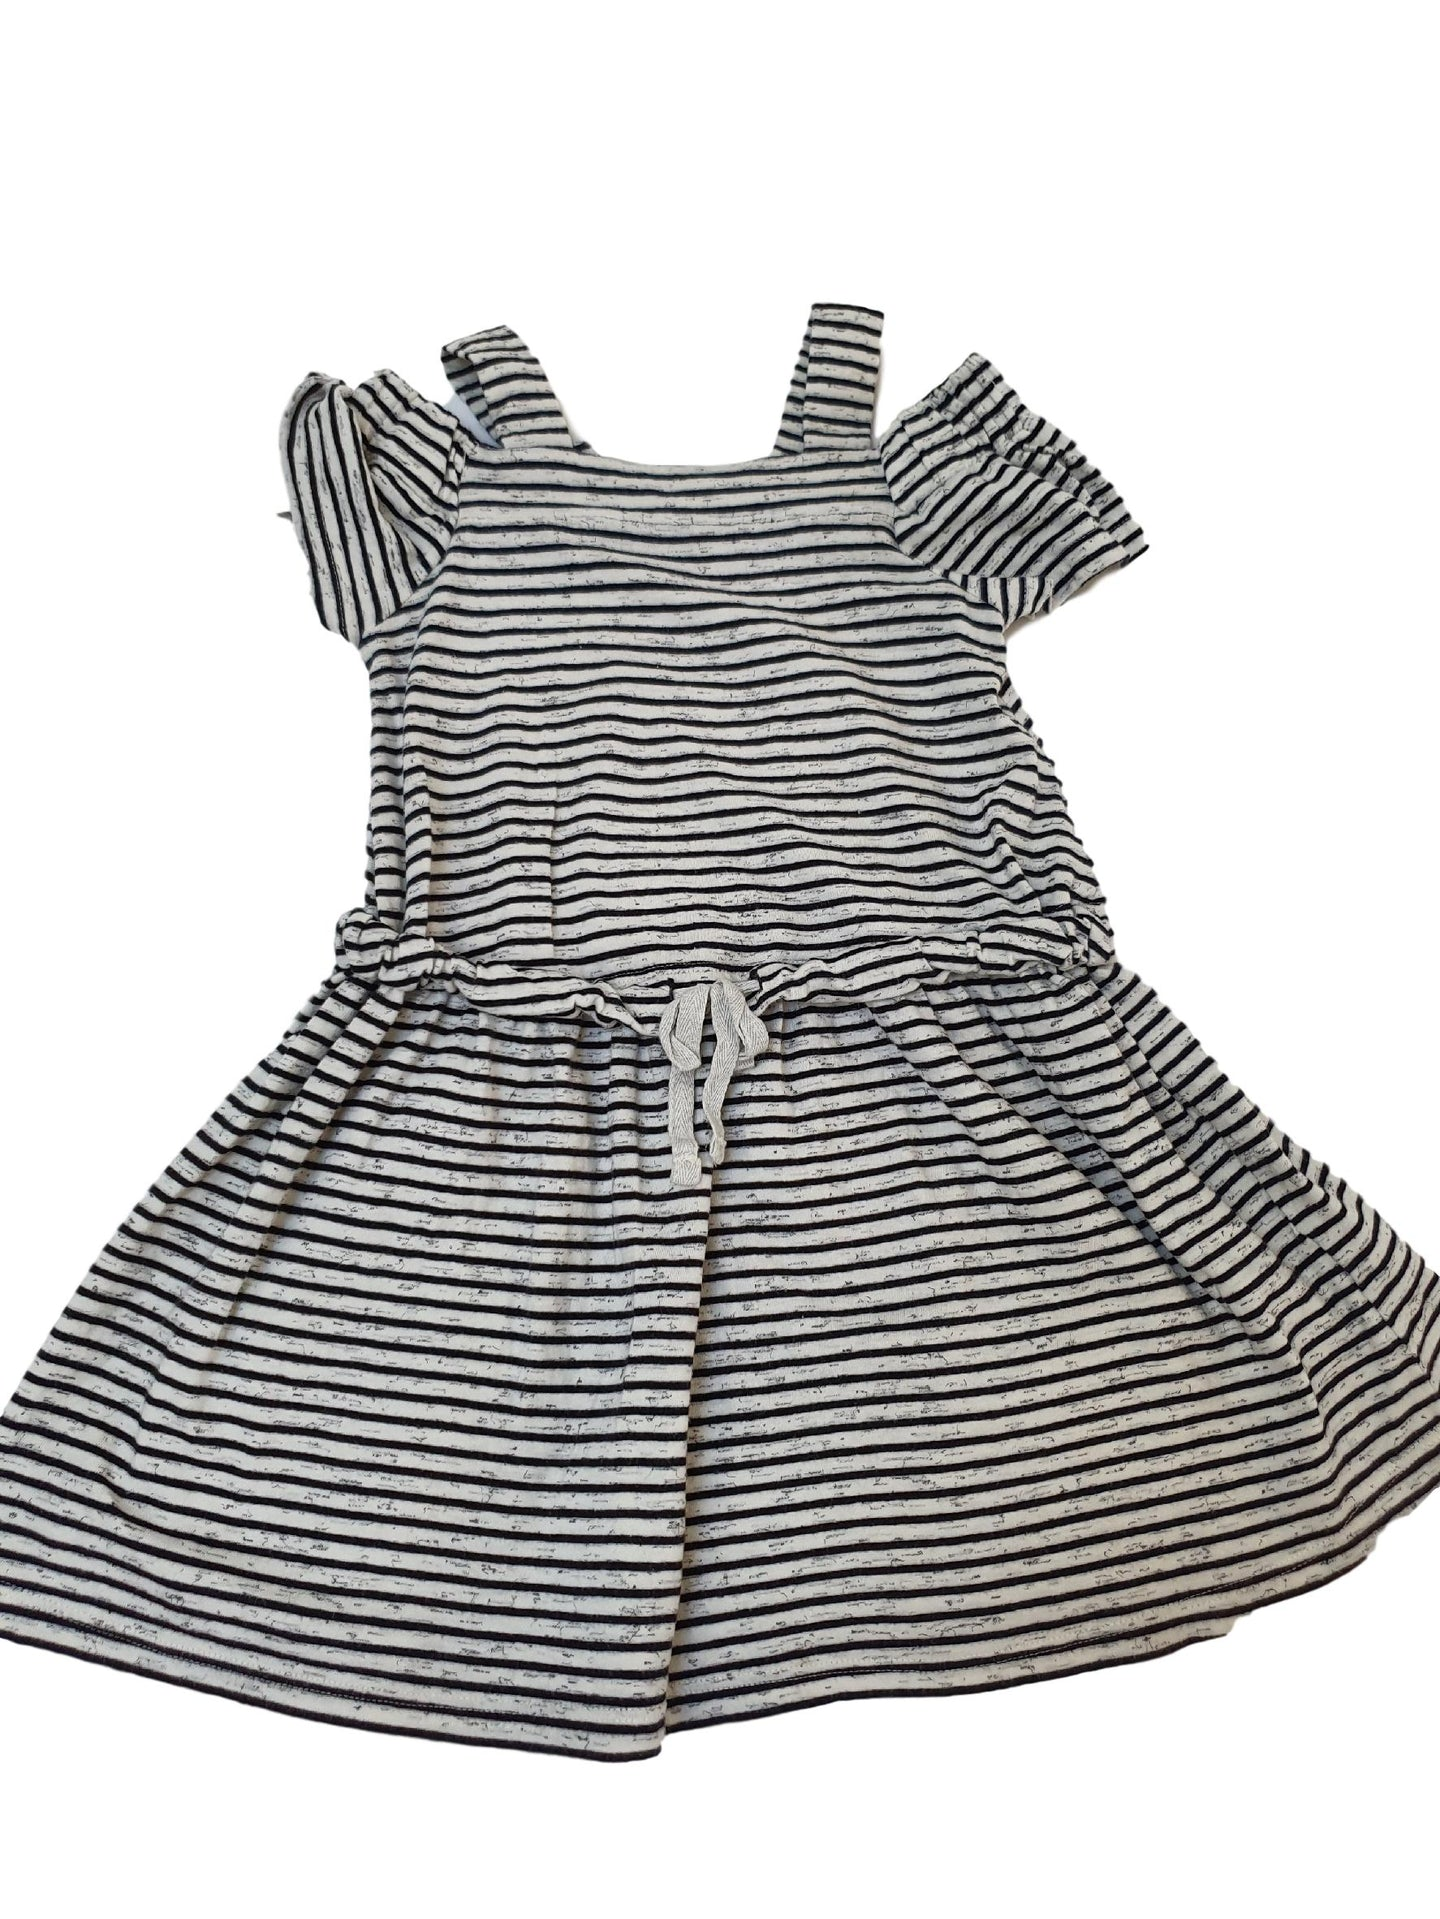 NEXT girl dress 4yo